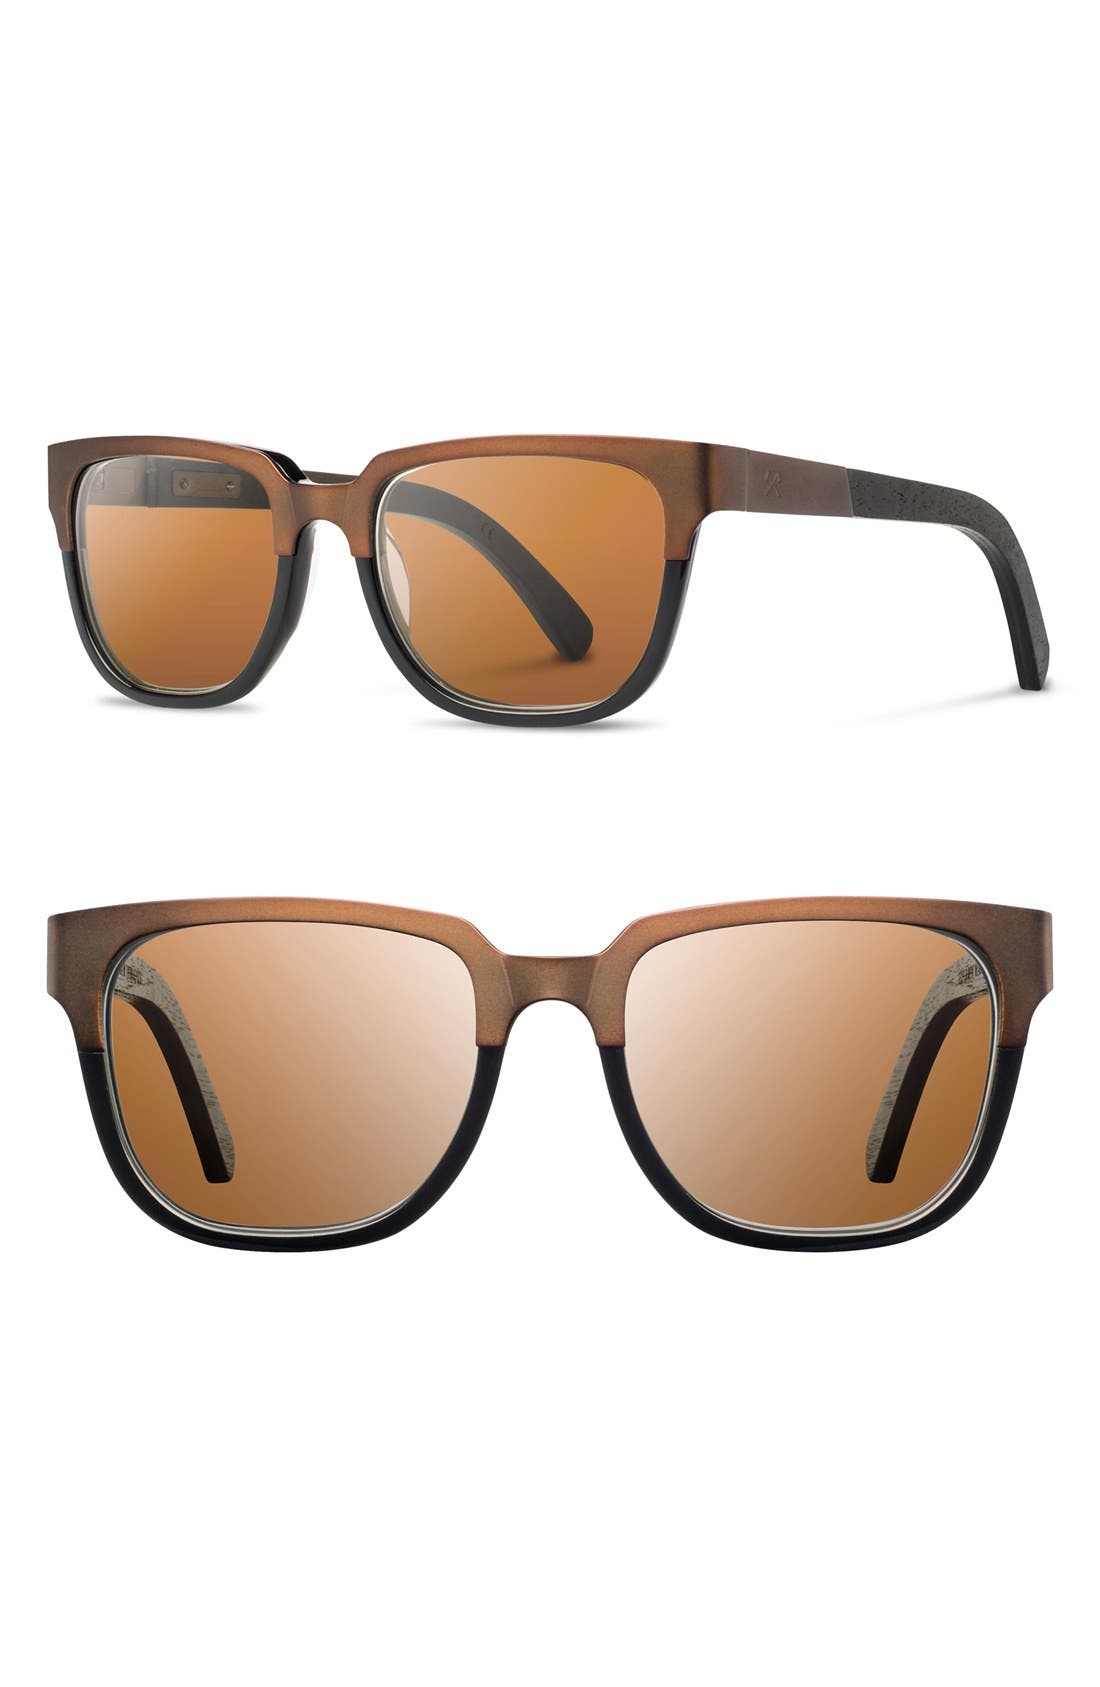 SHWOOD 'Prescott' 52mm Polarized Titanium & Wood Sunglasses